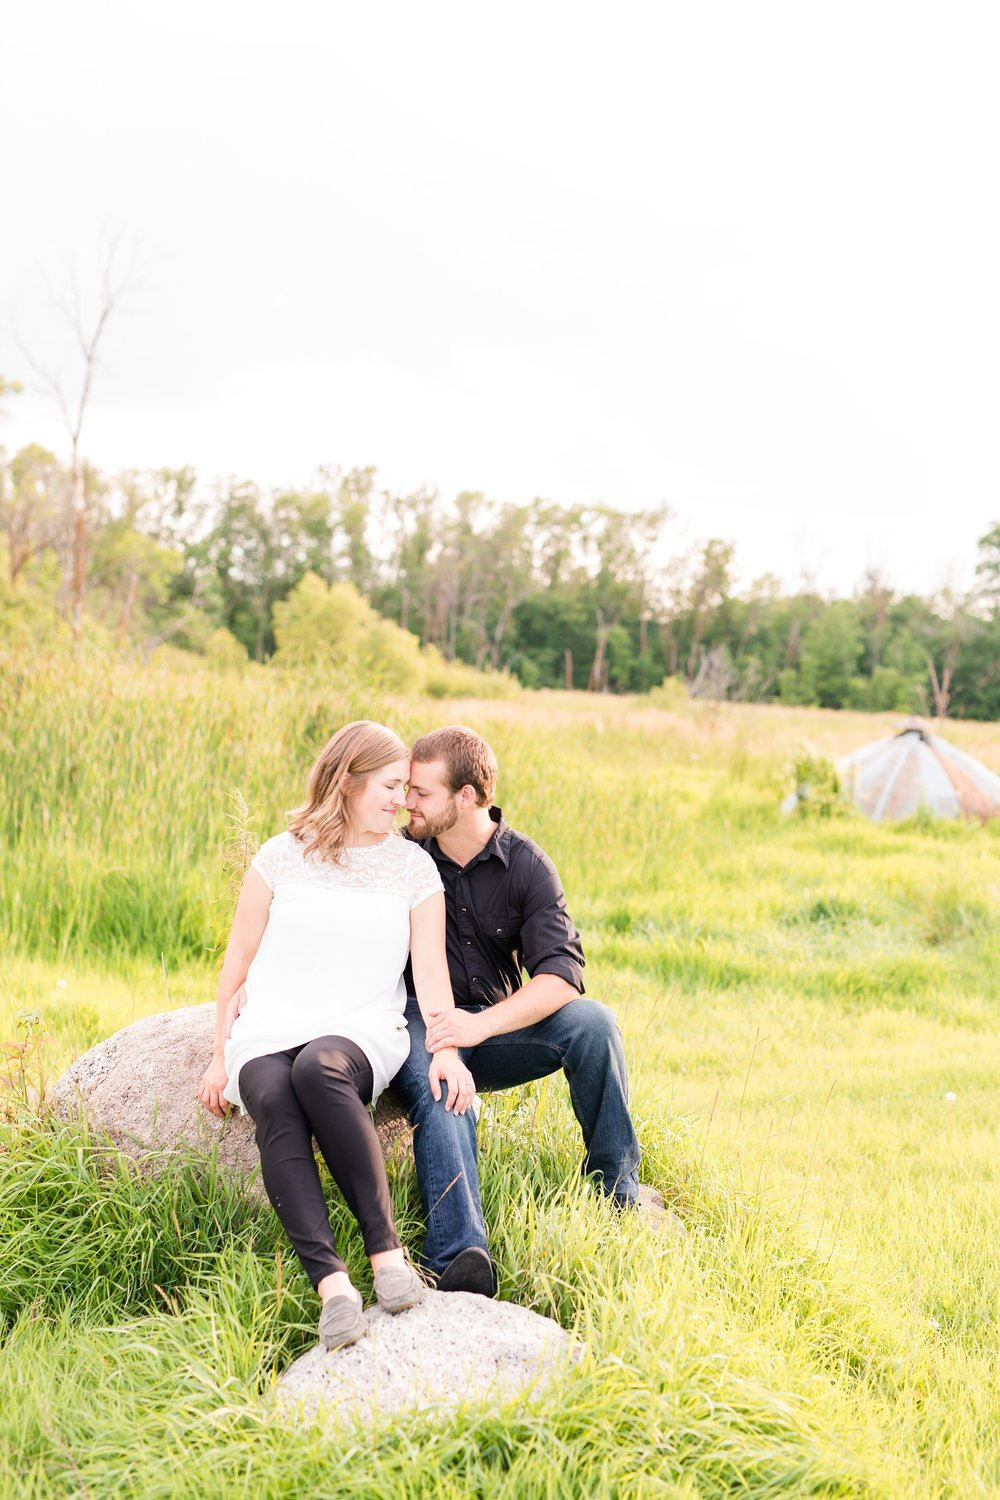 AmberLangerudPhotography_Countryside Engagement Session in Minnesota_3108.jpg